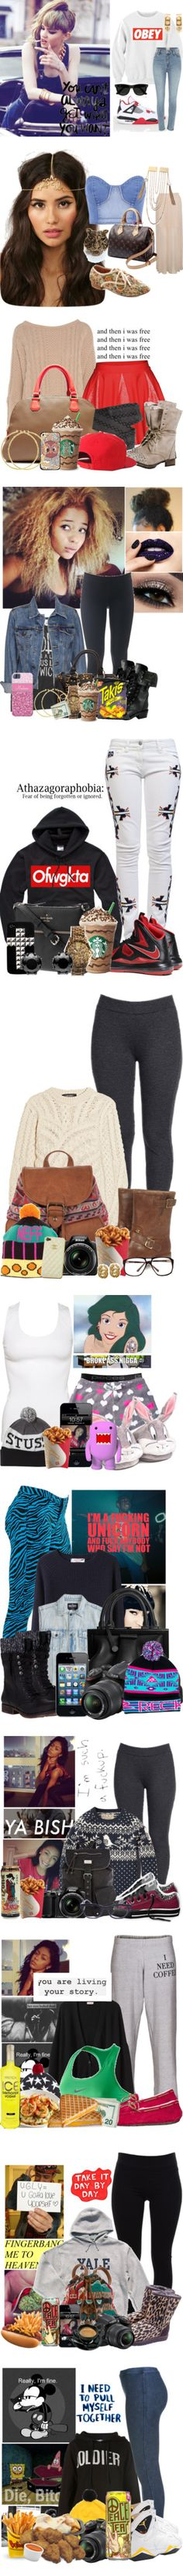 """""""Swagg Part 15"""" by littlemissdeaja ❤ liked on Polyvore"""